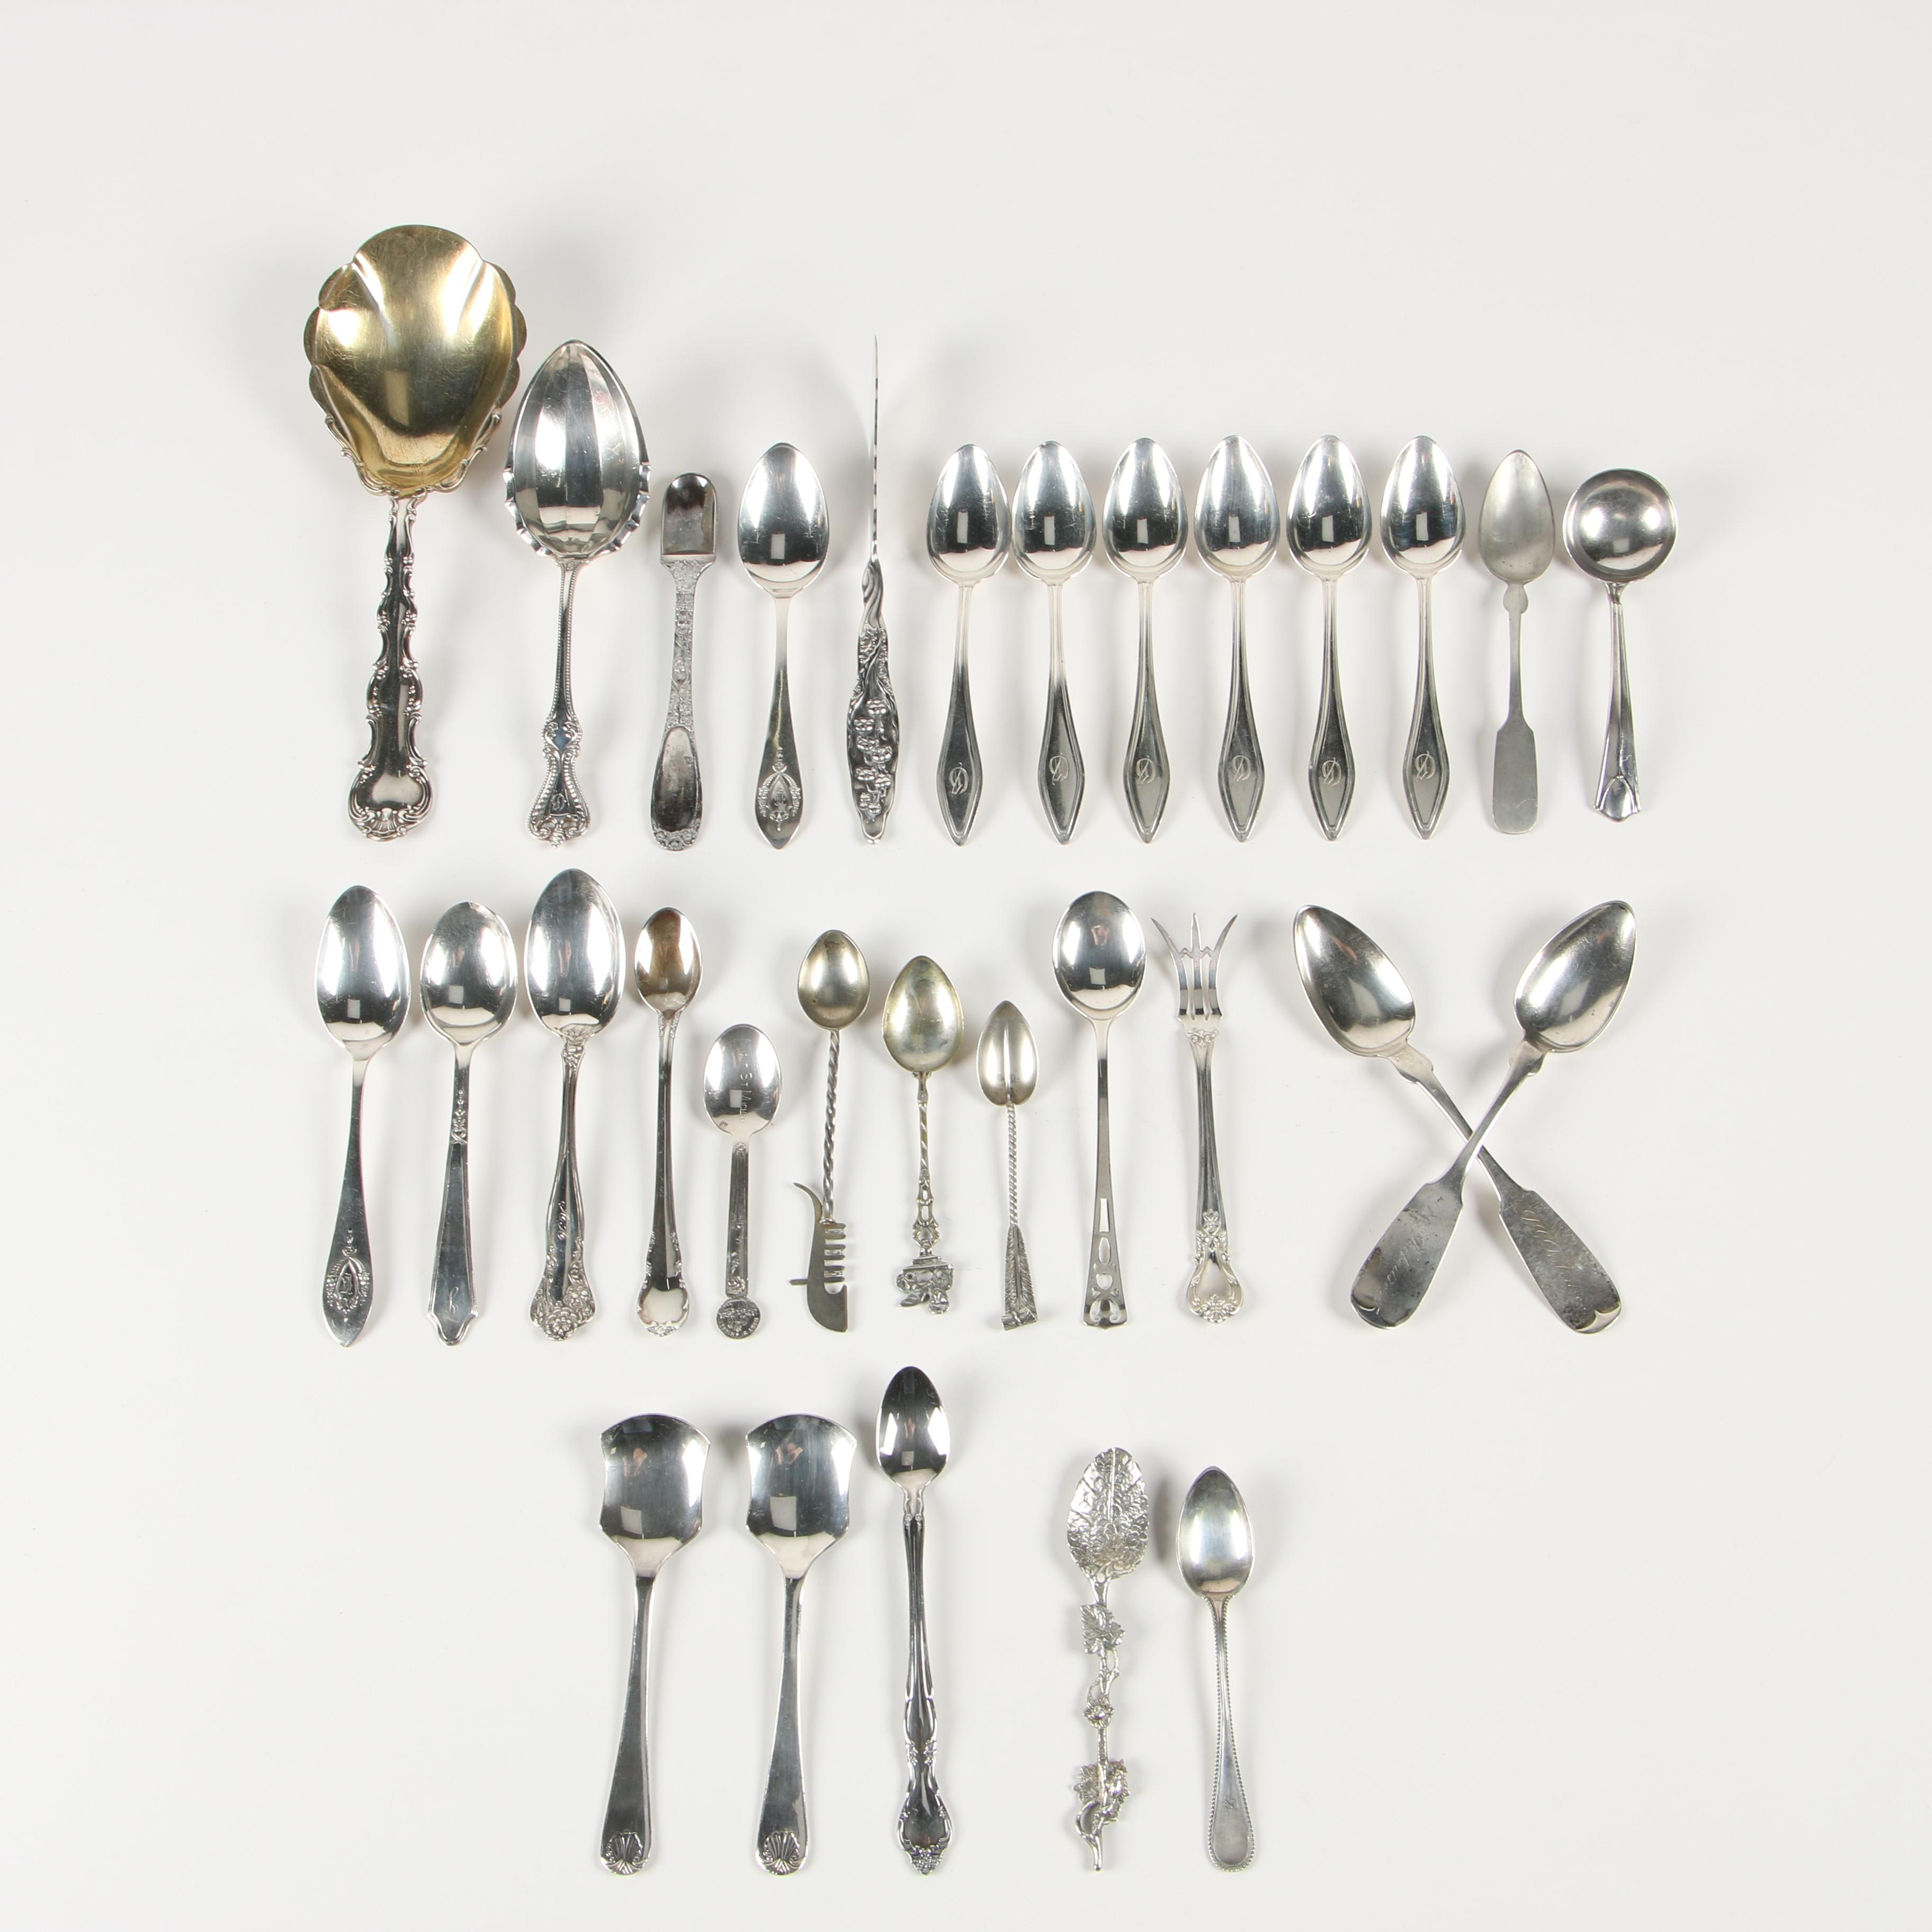 Assorted Sterling Silver, Coin Silver, 800 Silver, and Silver-Plated Flatware